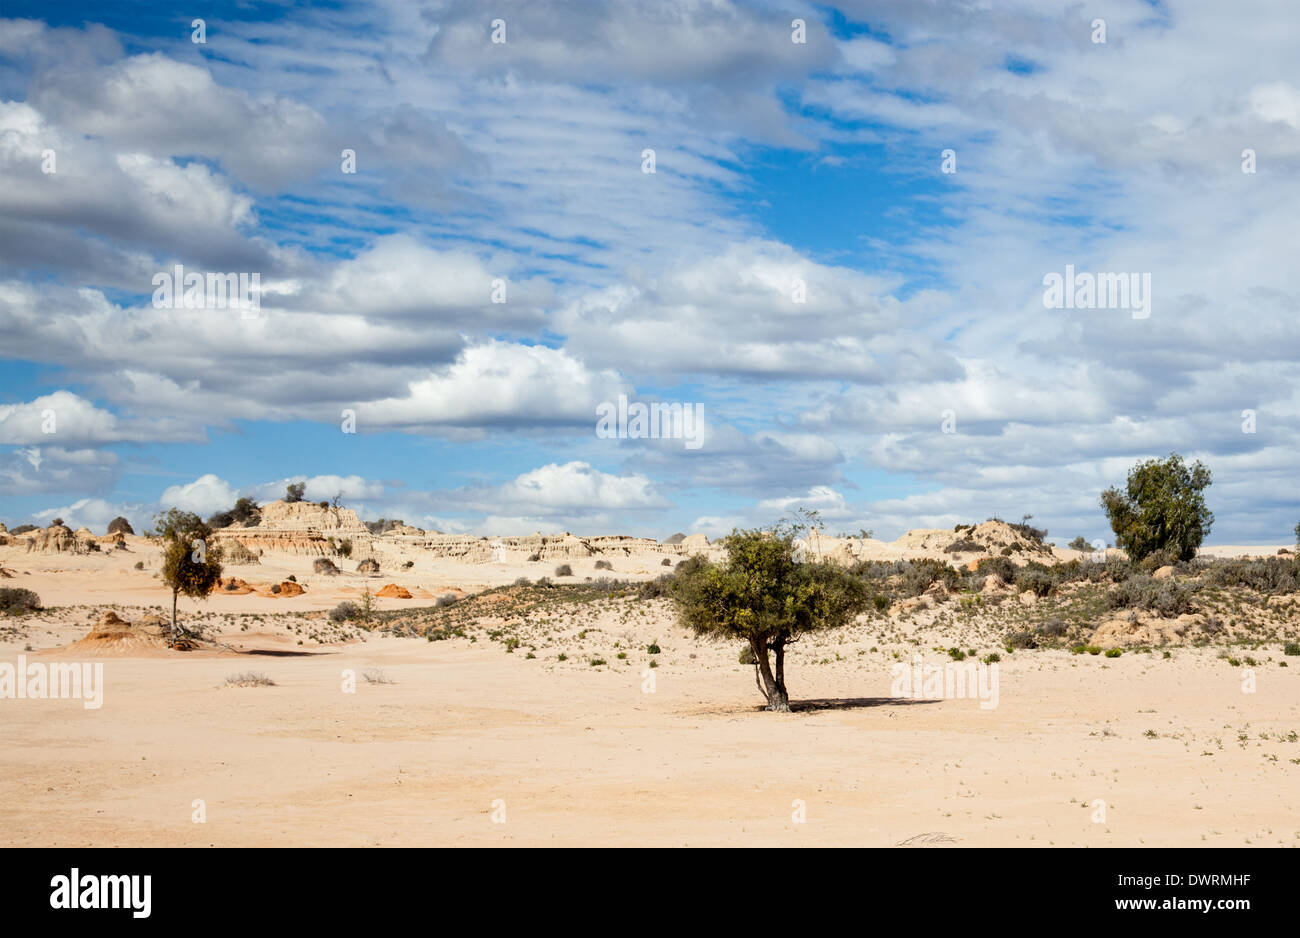 Lake Mungo is former inland lake now covered in strange formations. - Stock Image